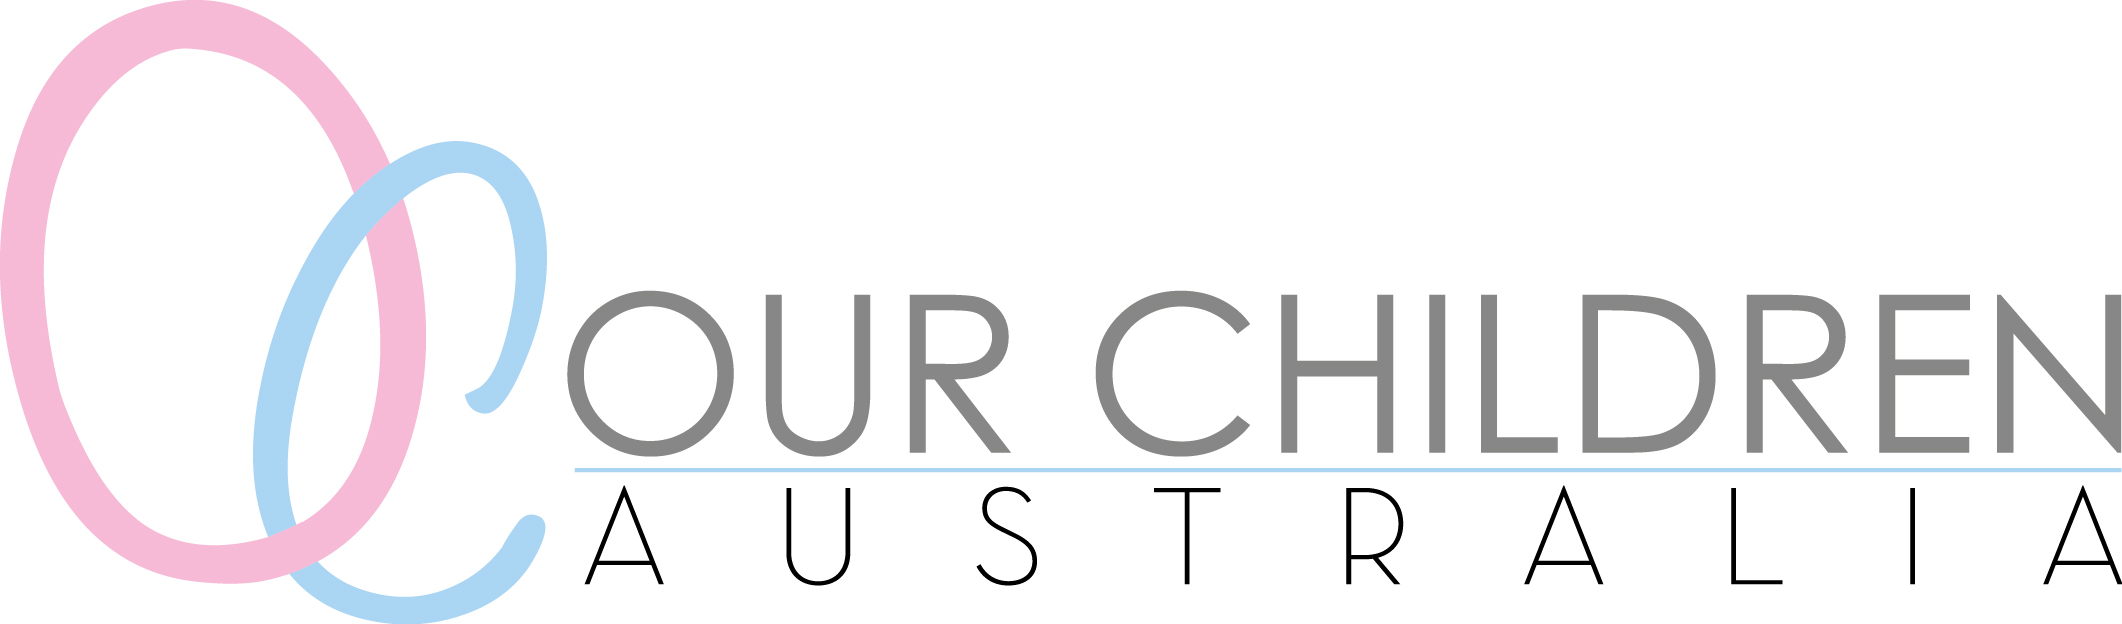 Our Children Australia logo